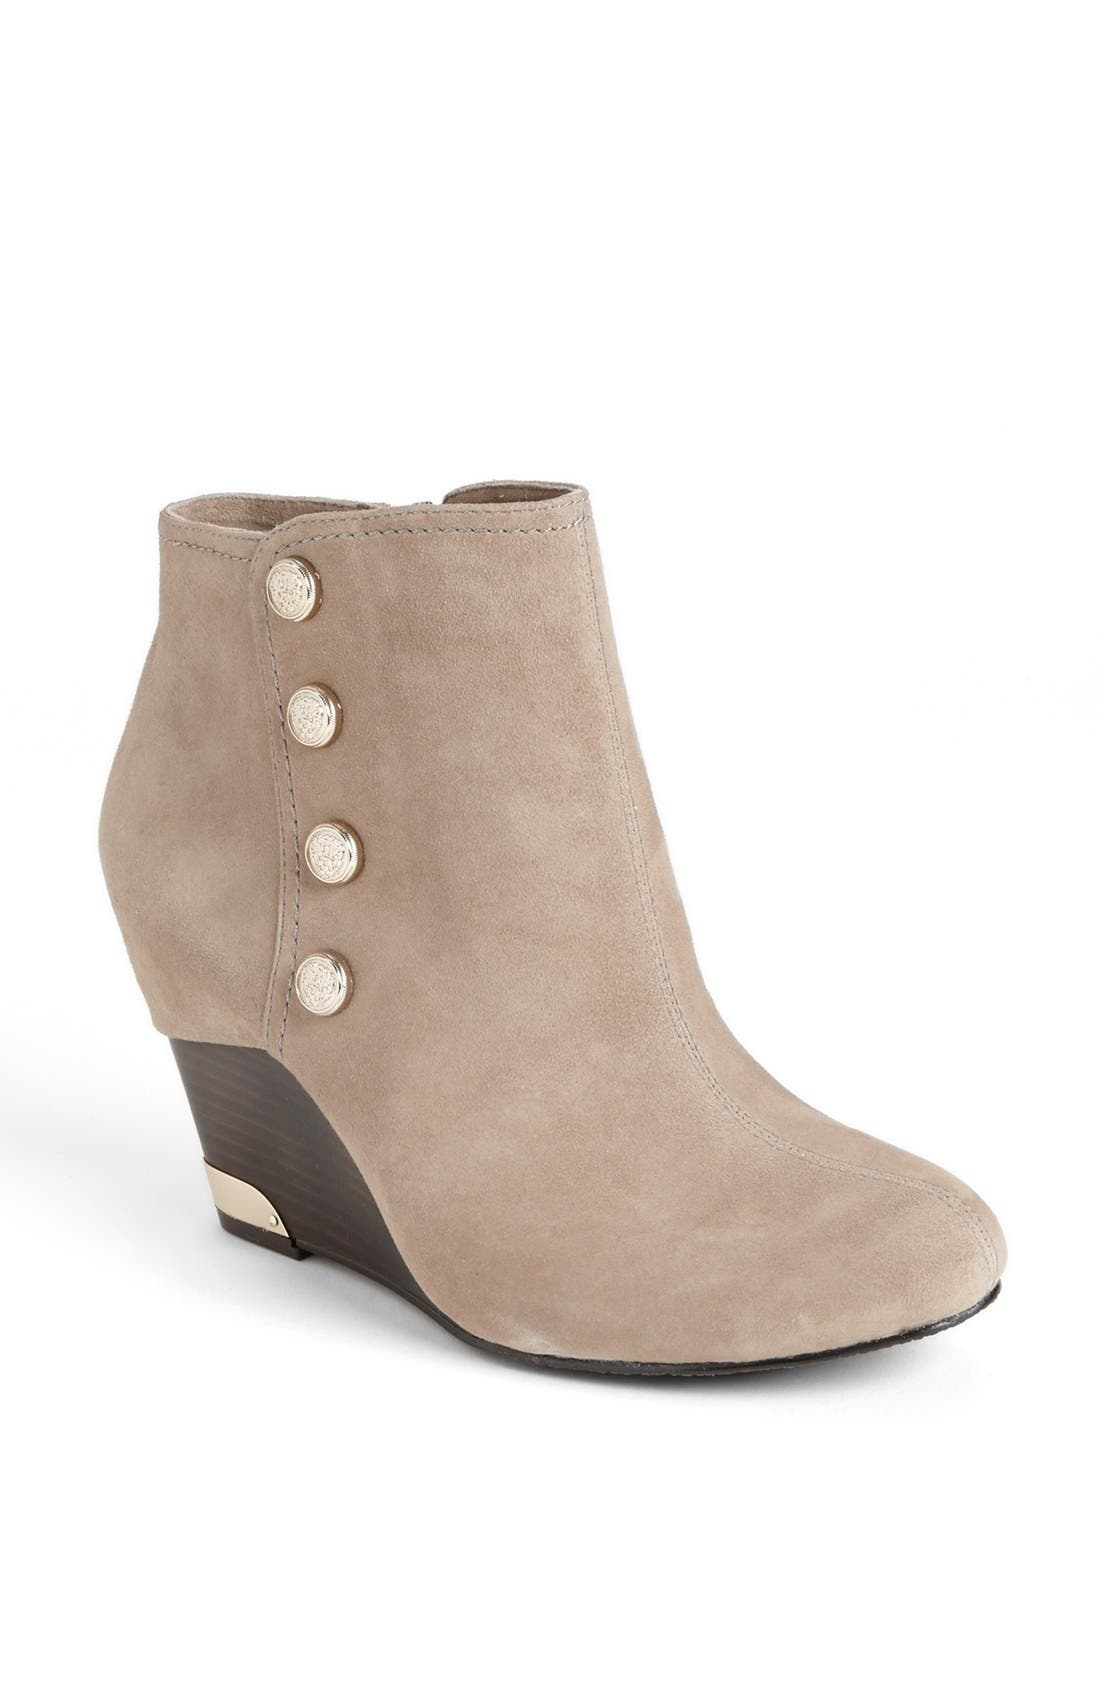 Main Image - Vince Camuto 'Huxley' Wedge Bootie